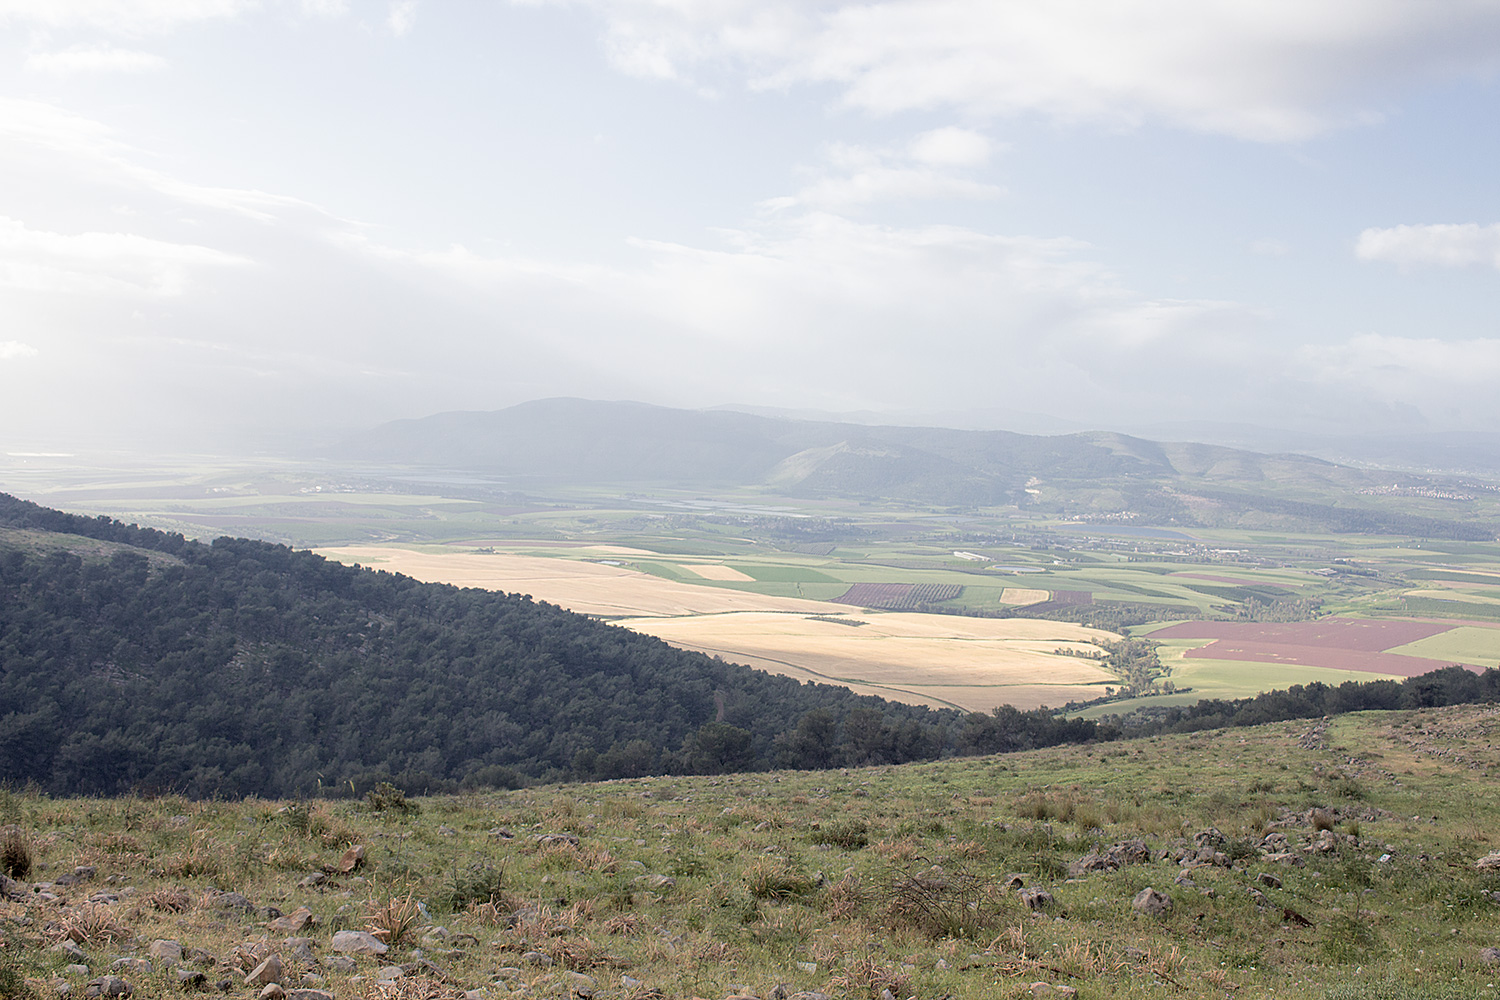 Gilboa Mt. from Hamoreh Hill